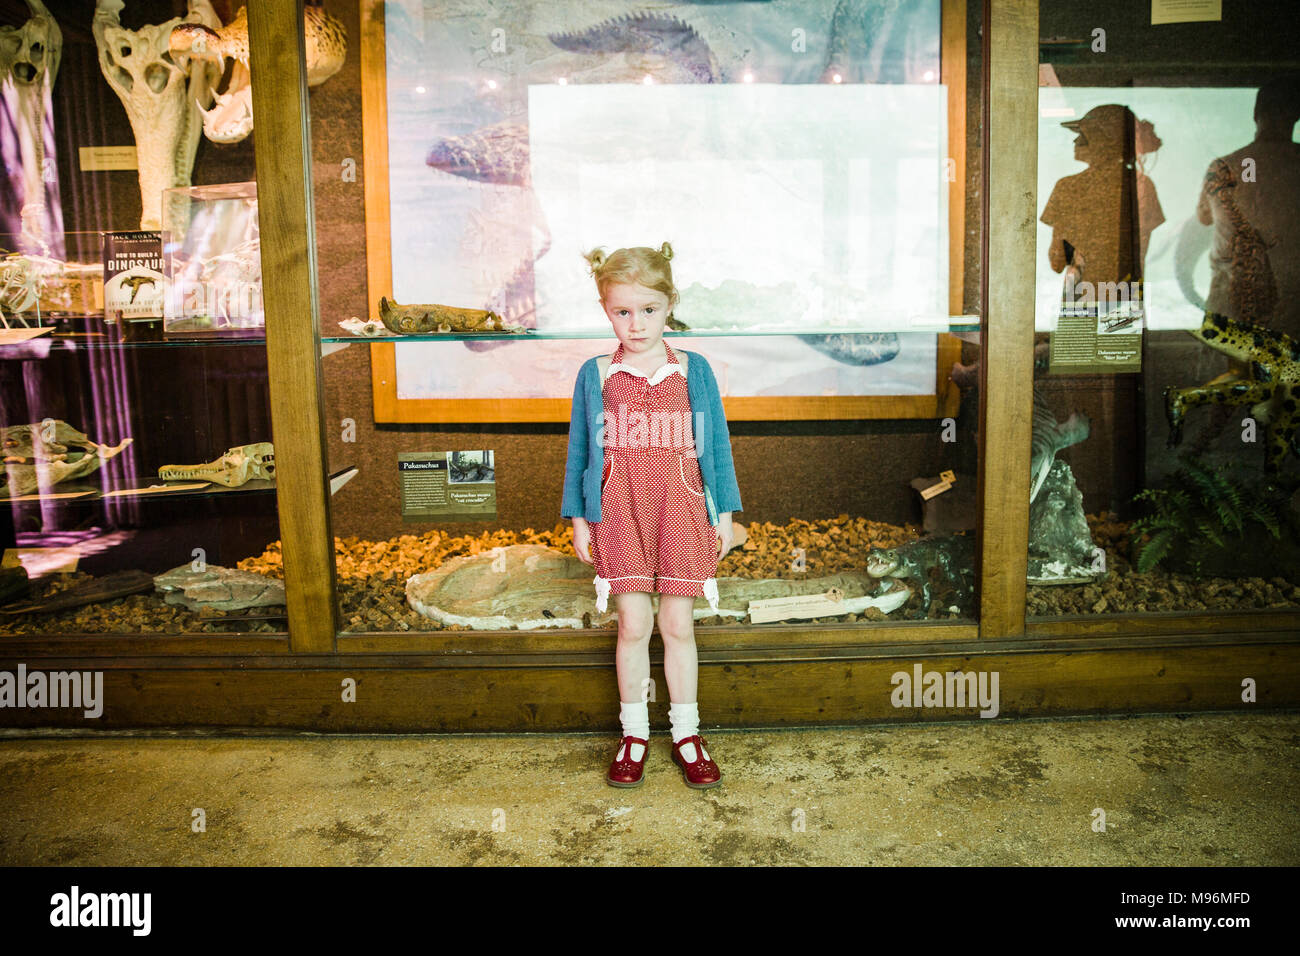 Girl standing next to museum exhibit - Stock Image